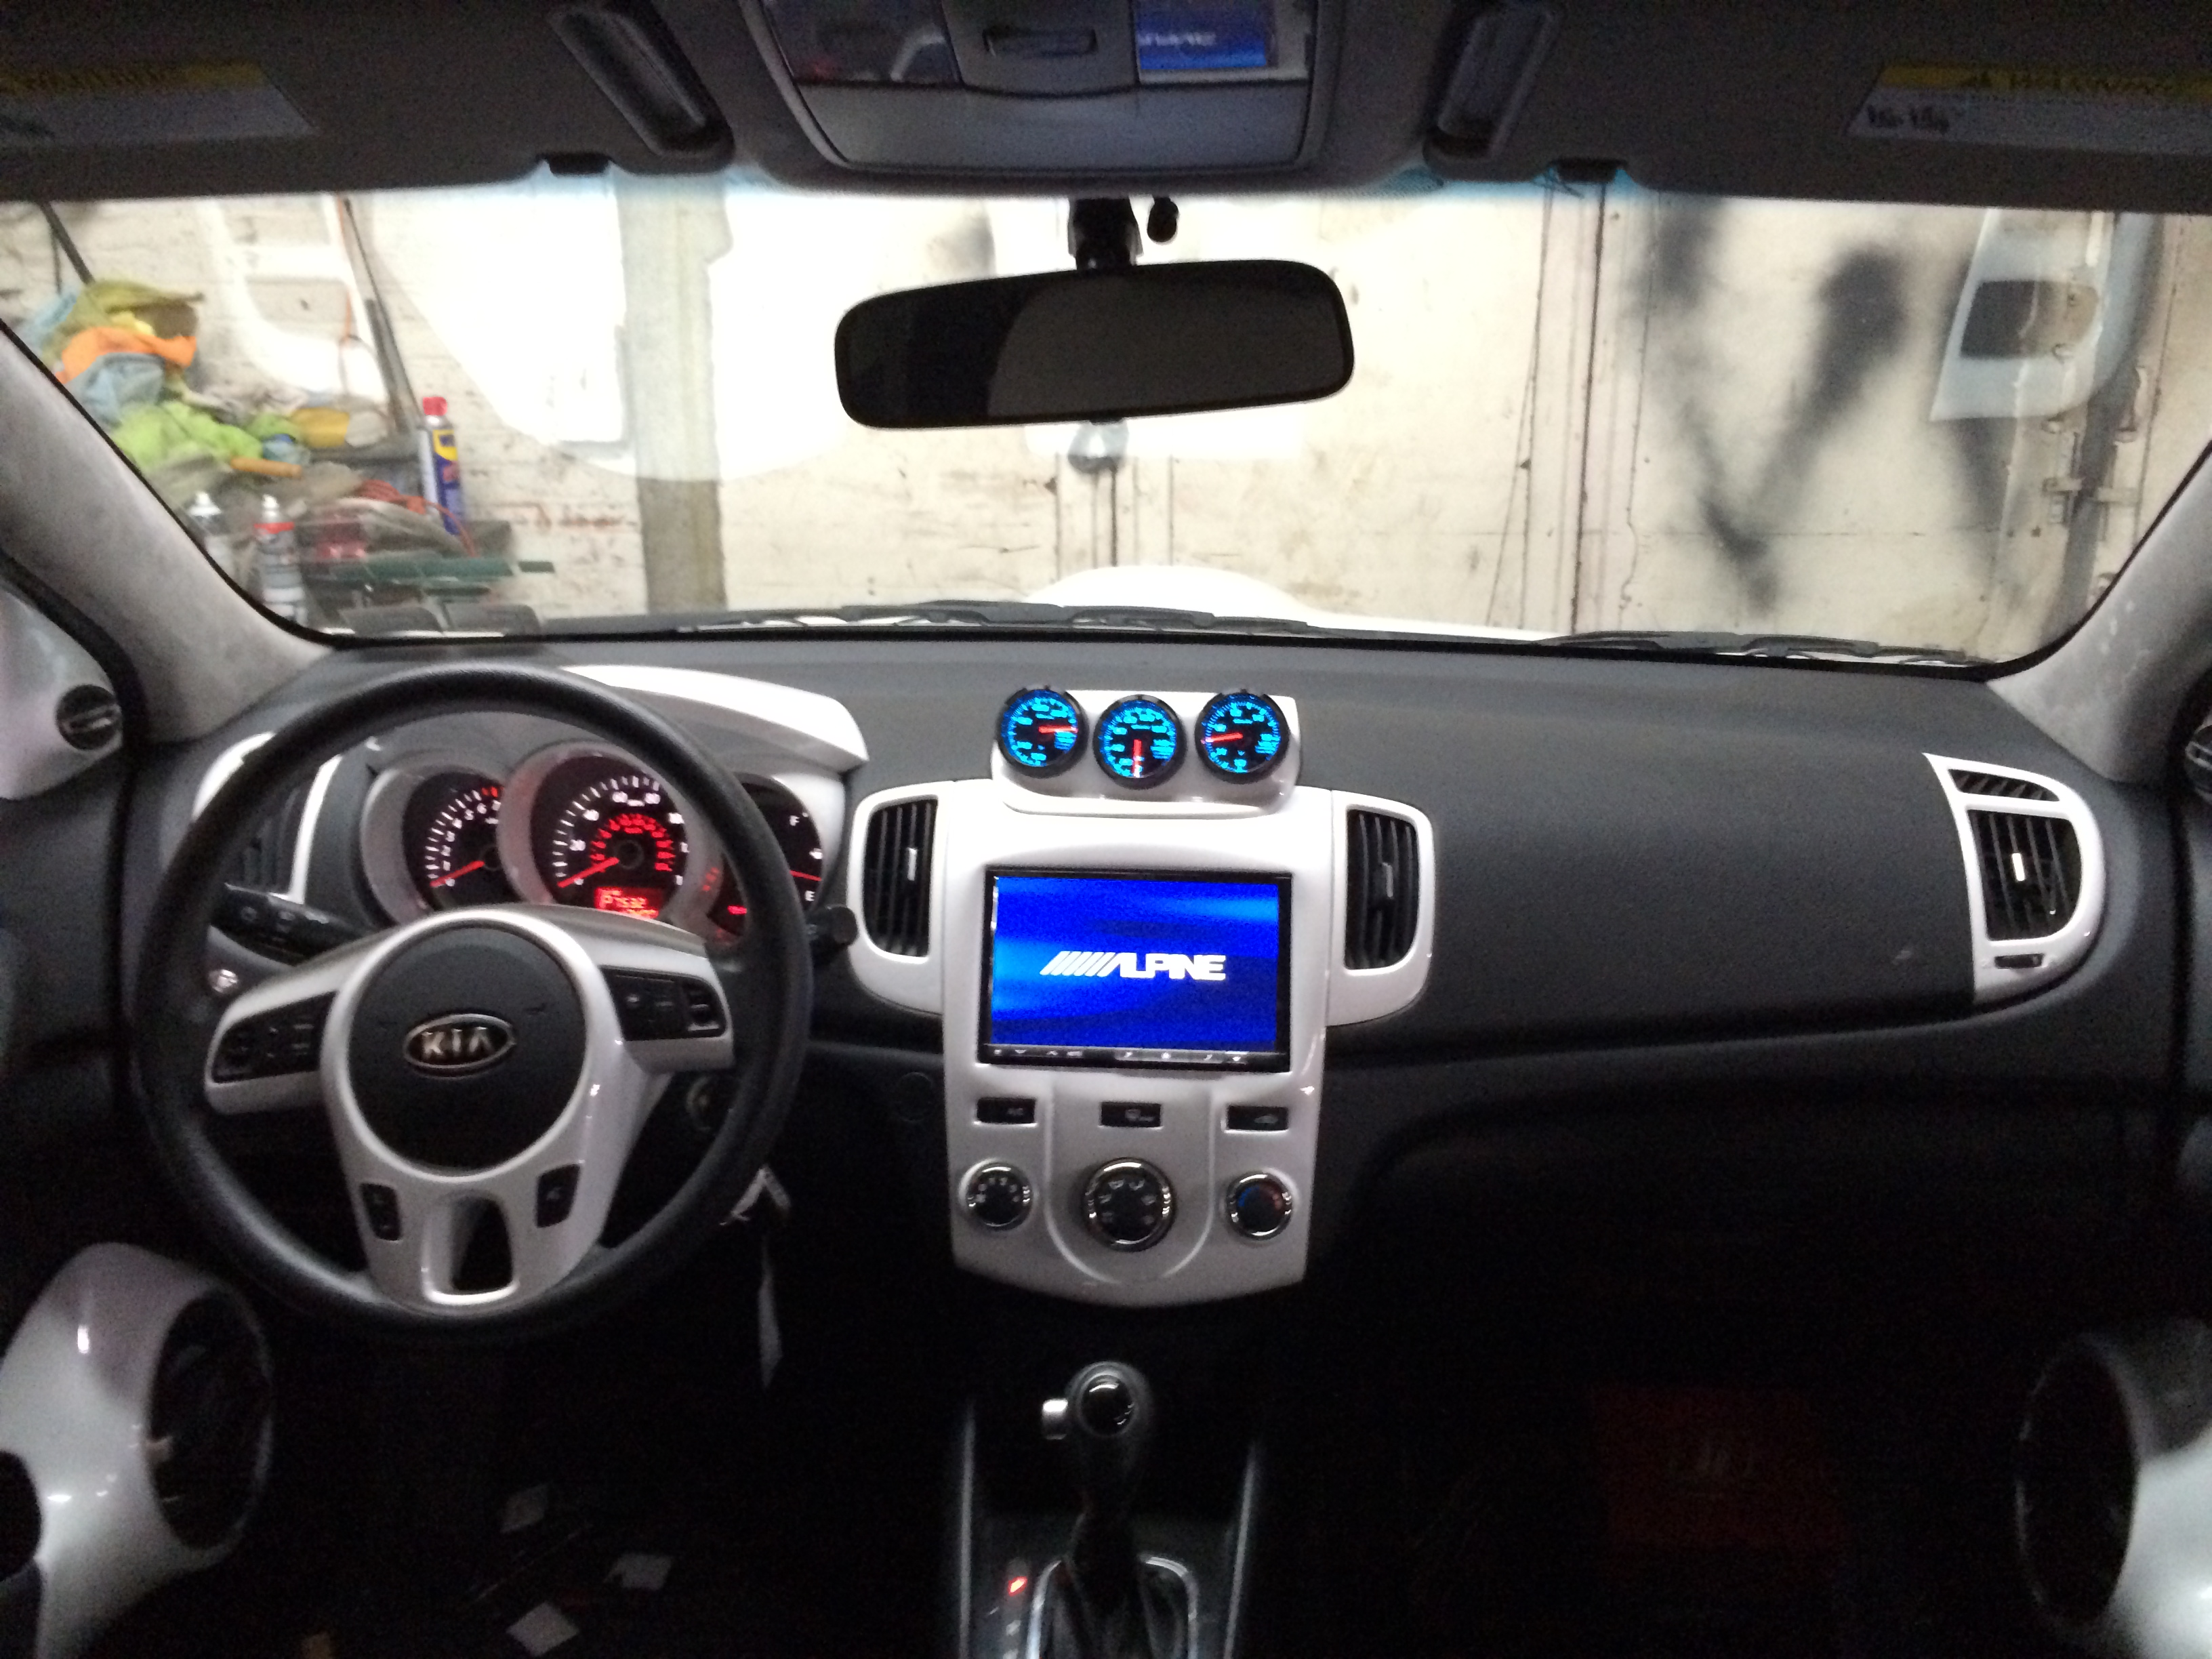 2012 Kia Forte Completely Modified High End Car Stereos